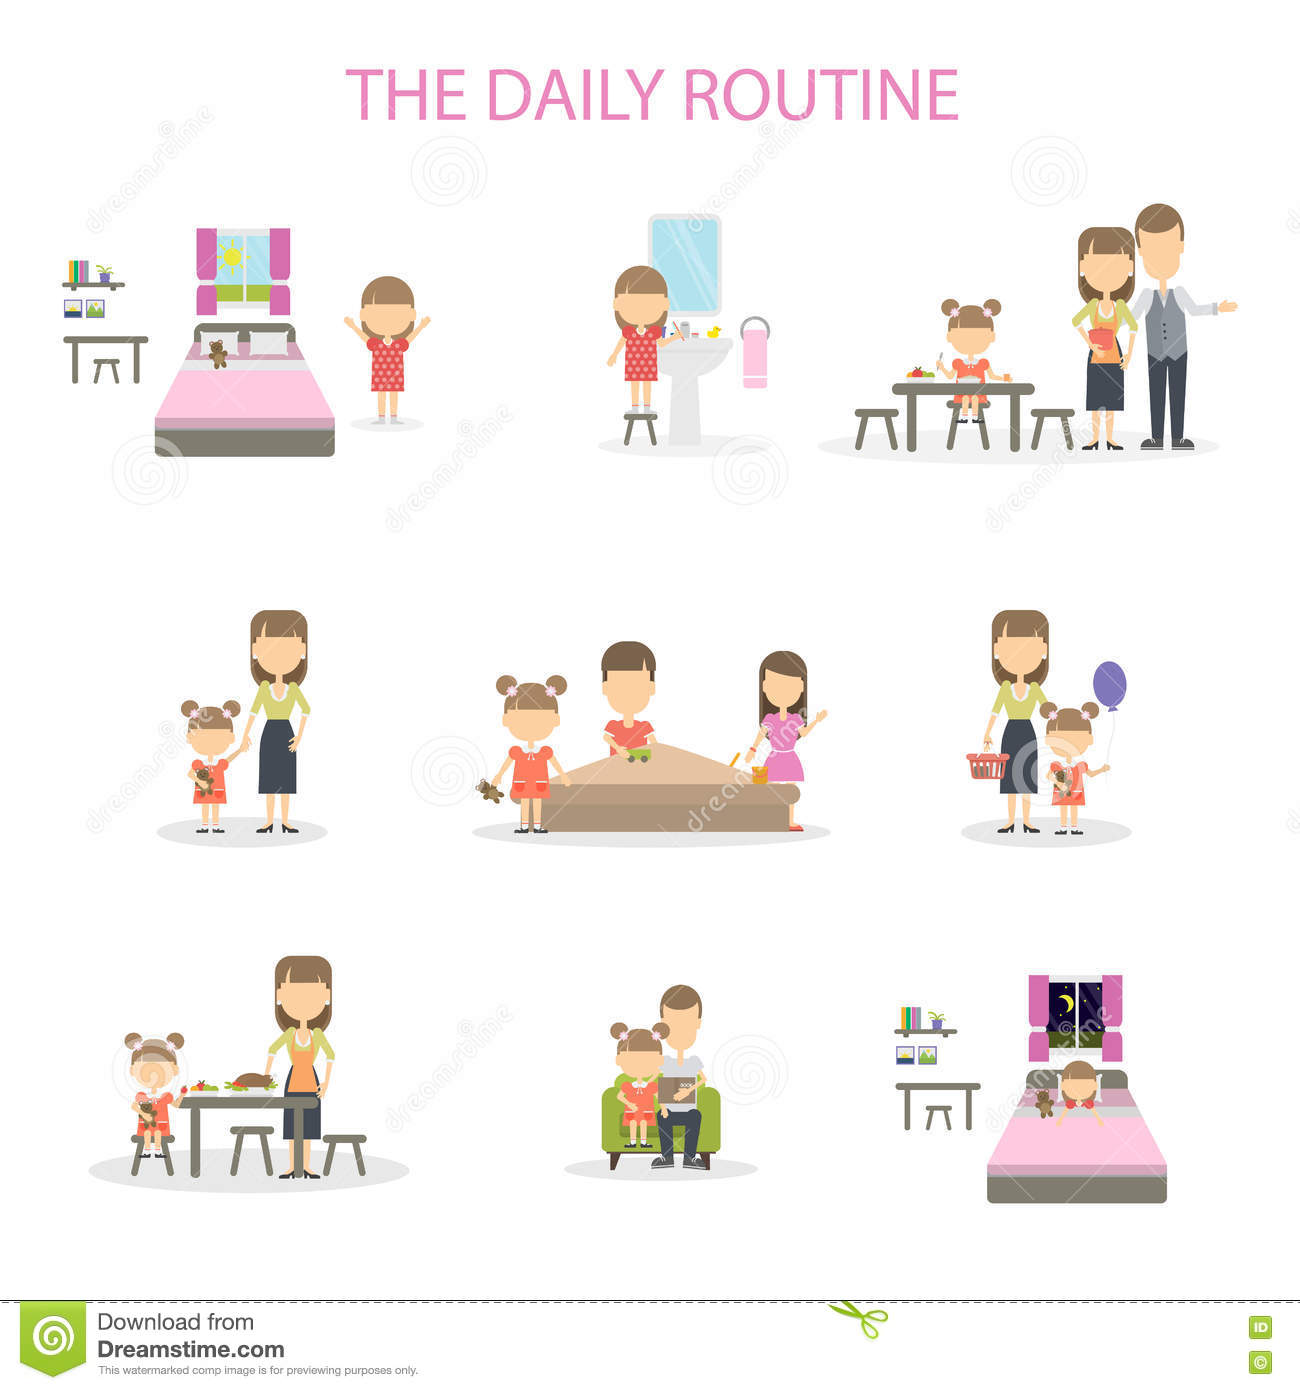 The Daily Routine Cartoon Vector